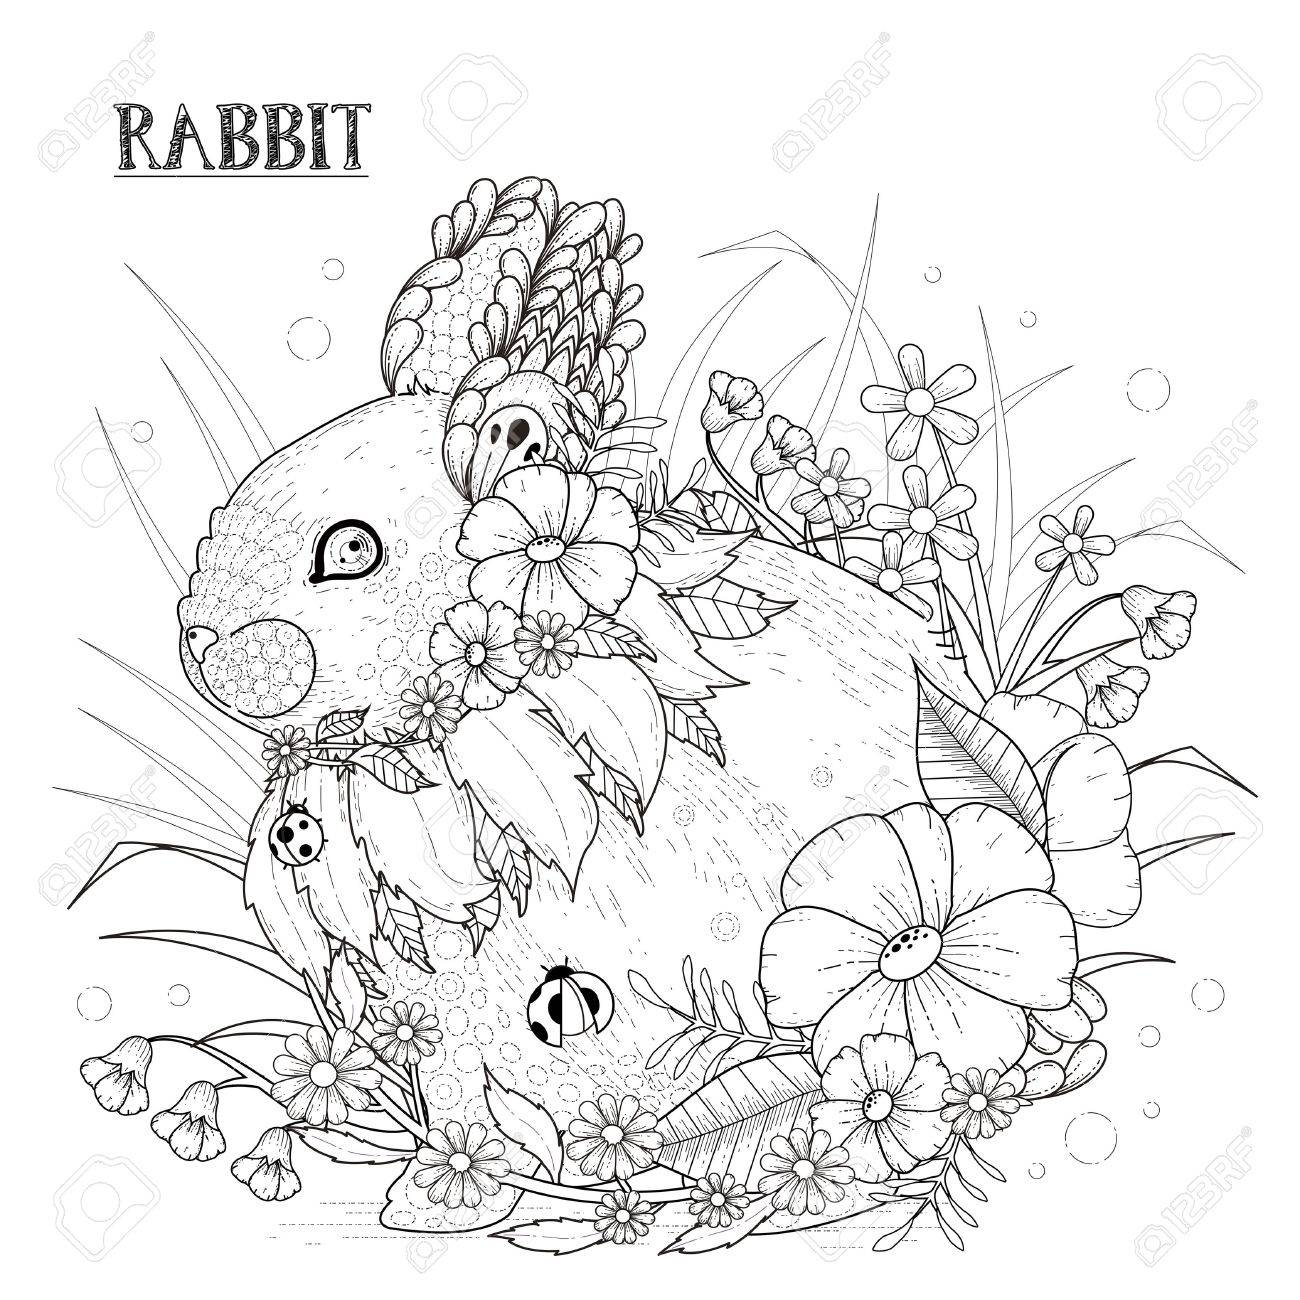 adorable rabbit coloring page in exquisite style royalty free